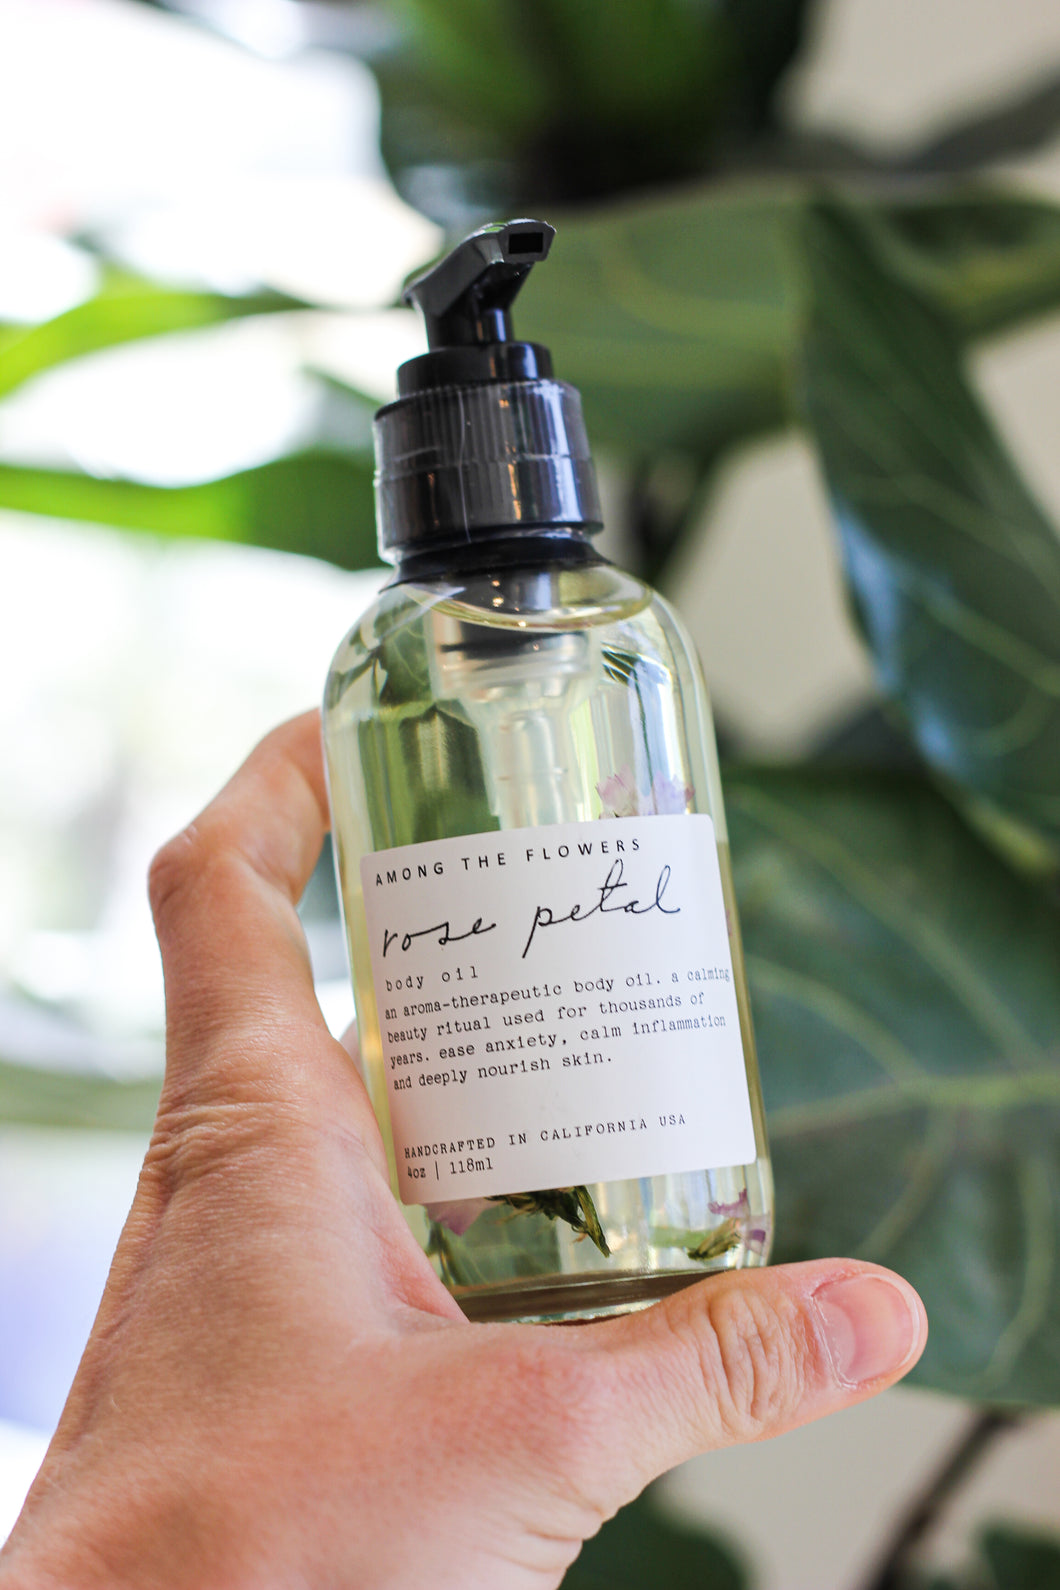 Among the Flowers - Rose Petal Body Oil